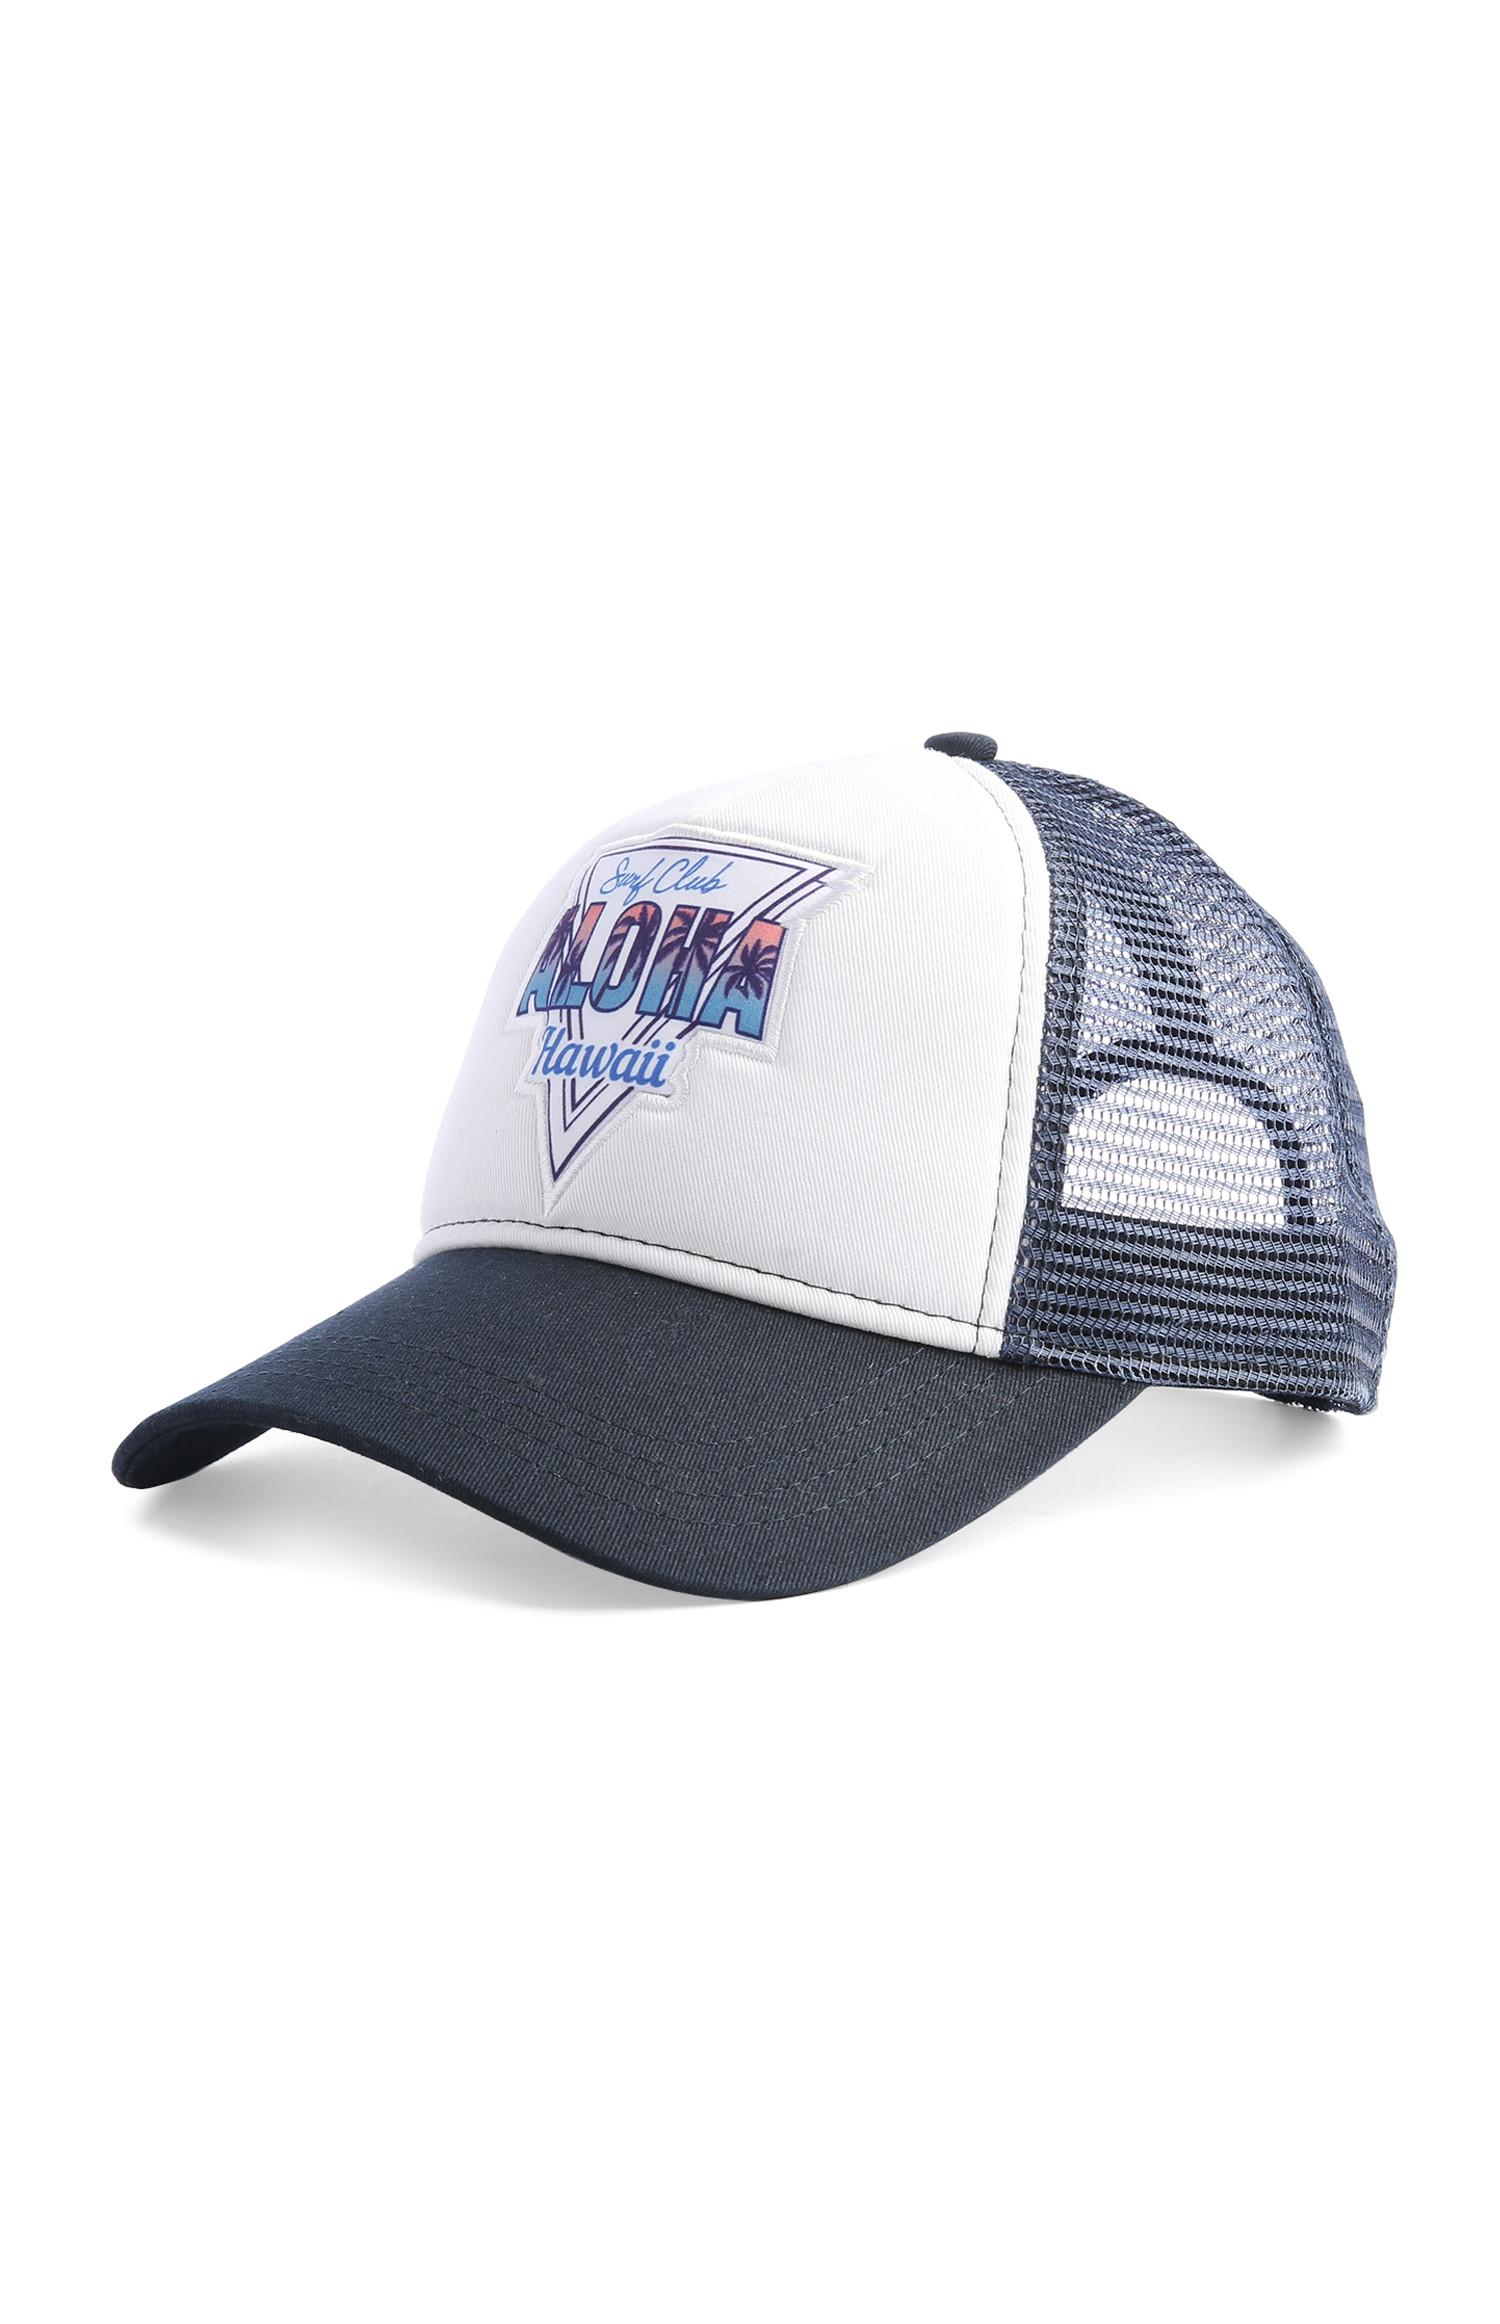 White Hawaii Cap